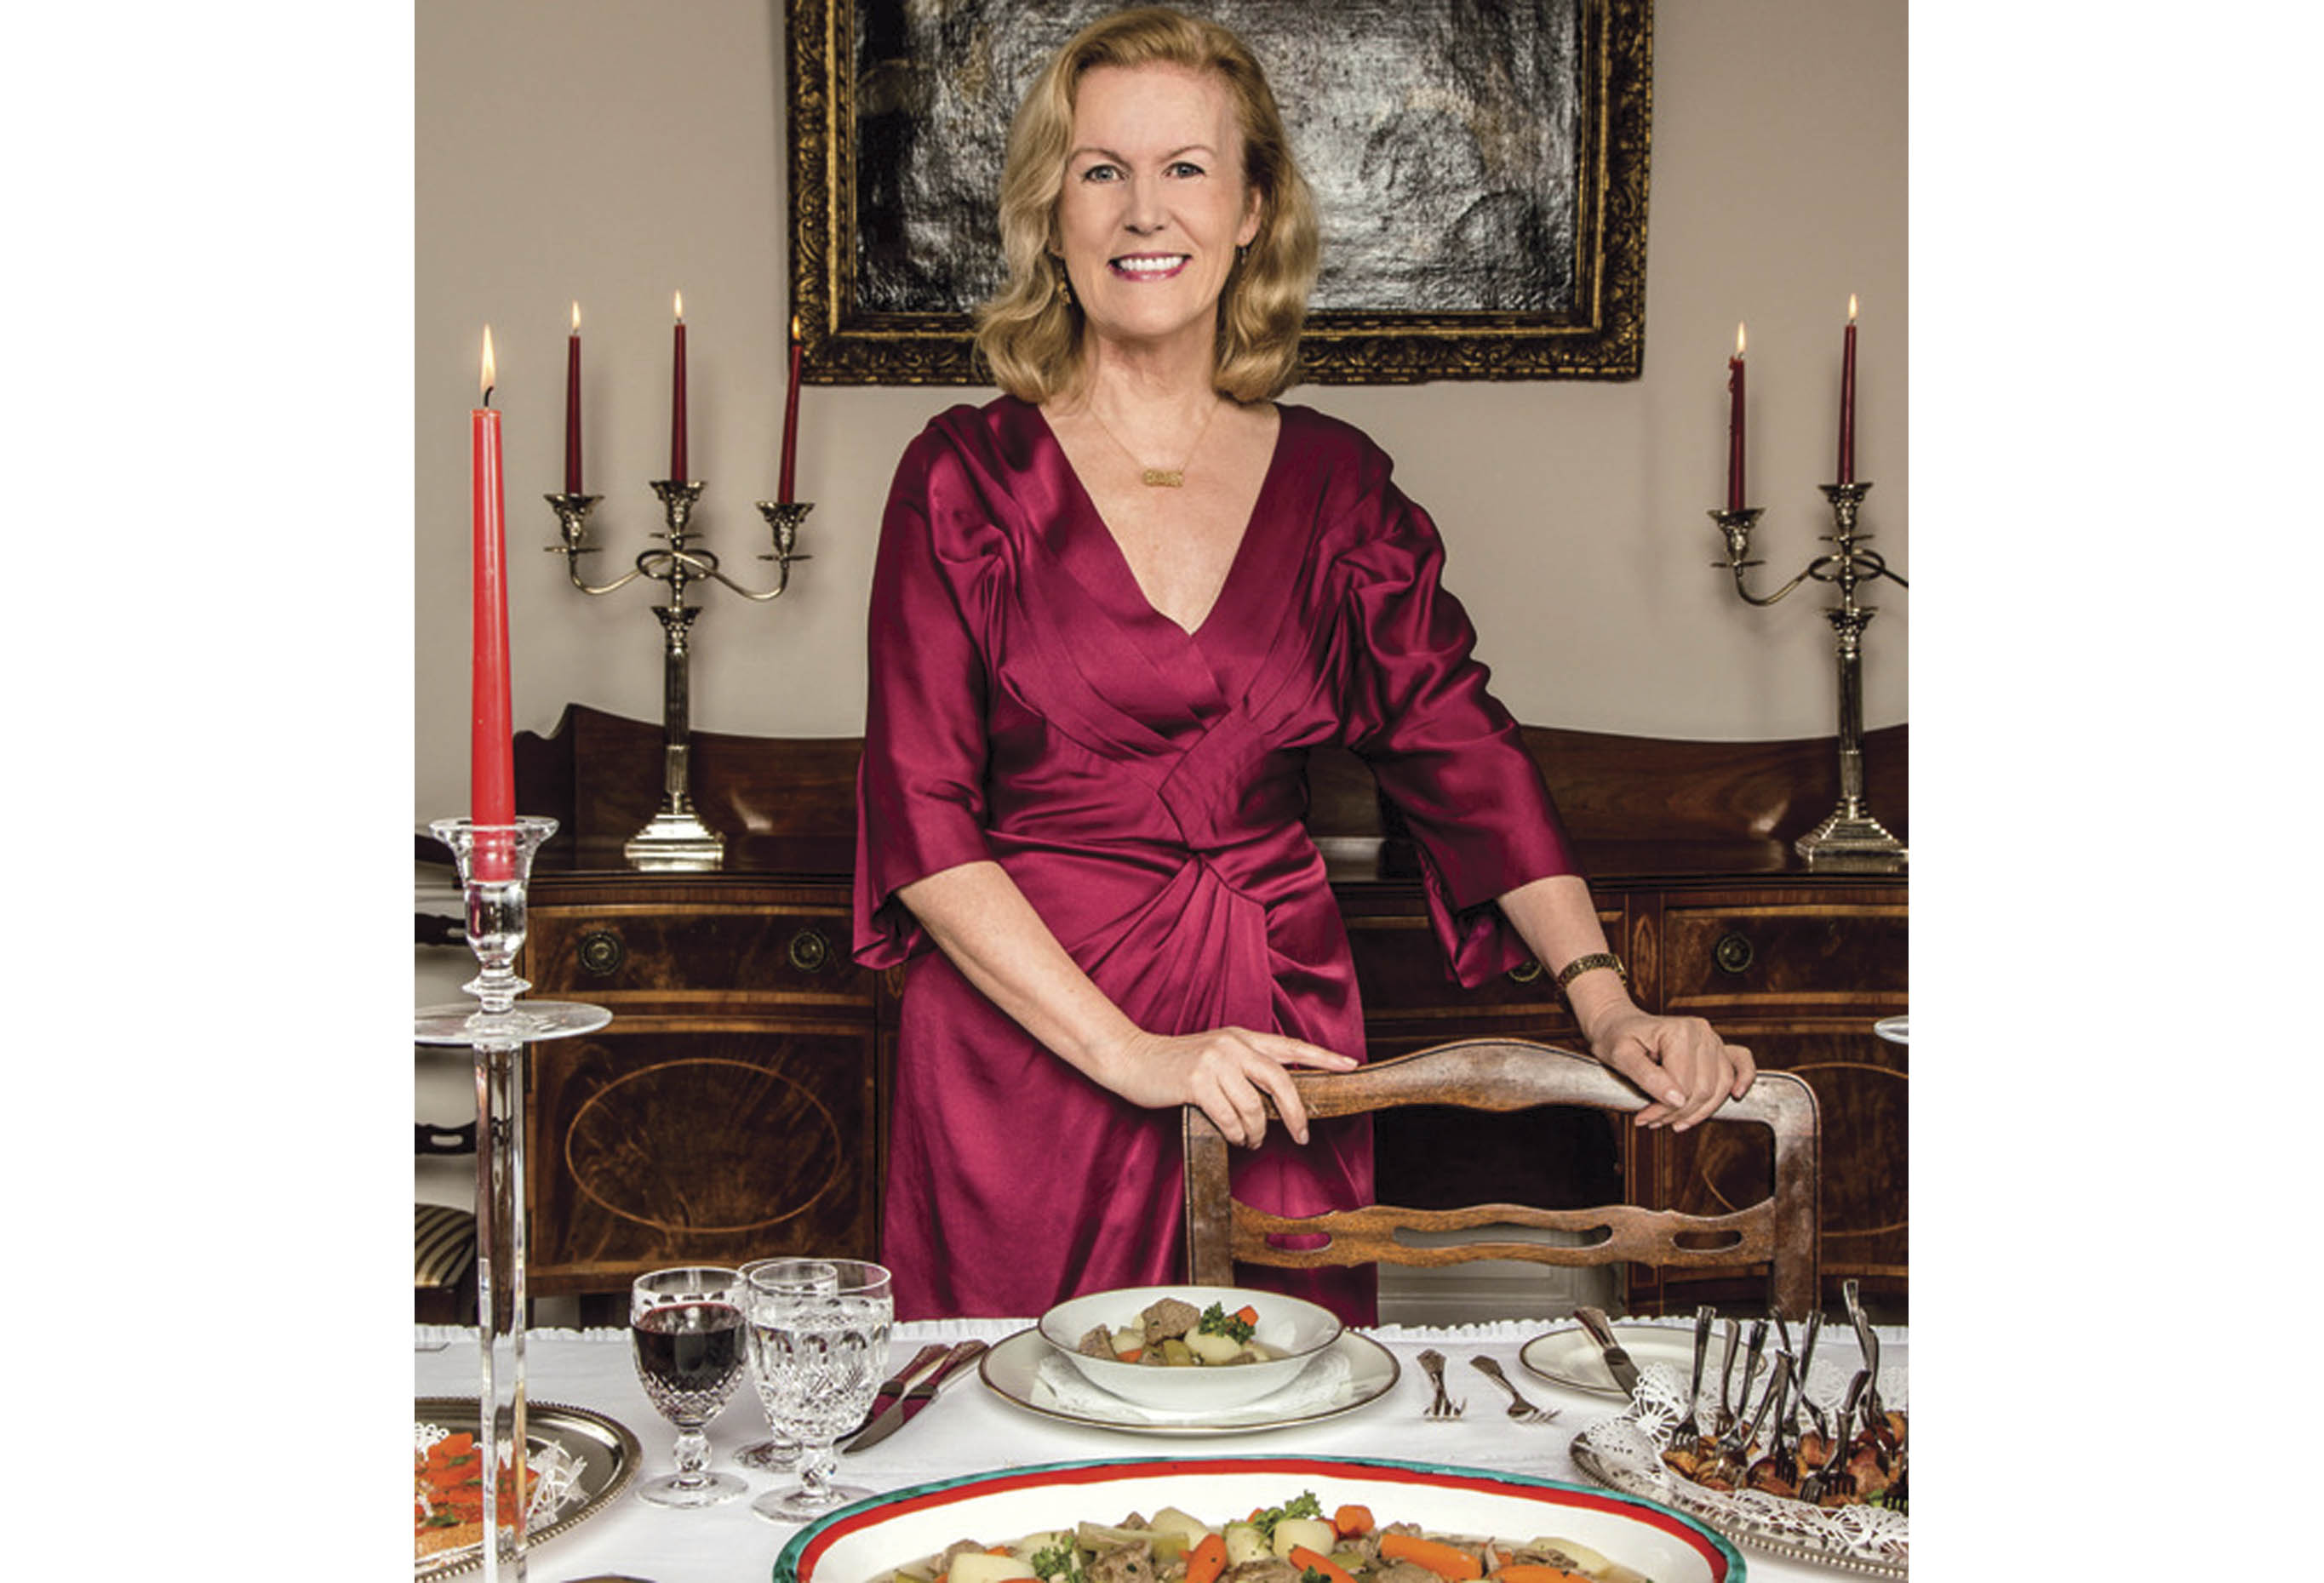 Ambassador  Anderson loves to highlight Ireland's dairy and meat products when she hosts gatherings at her  residence, as this photo from Capitol File  illustrates.